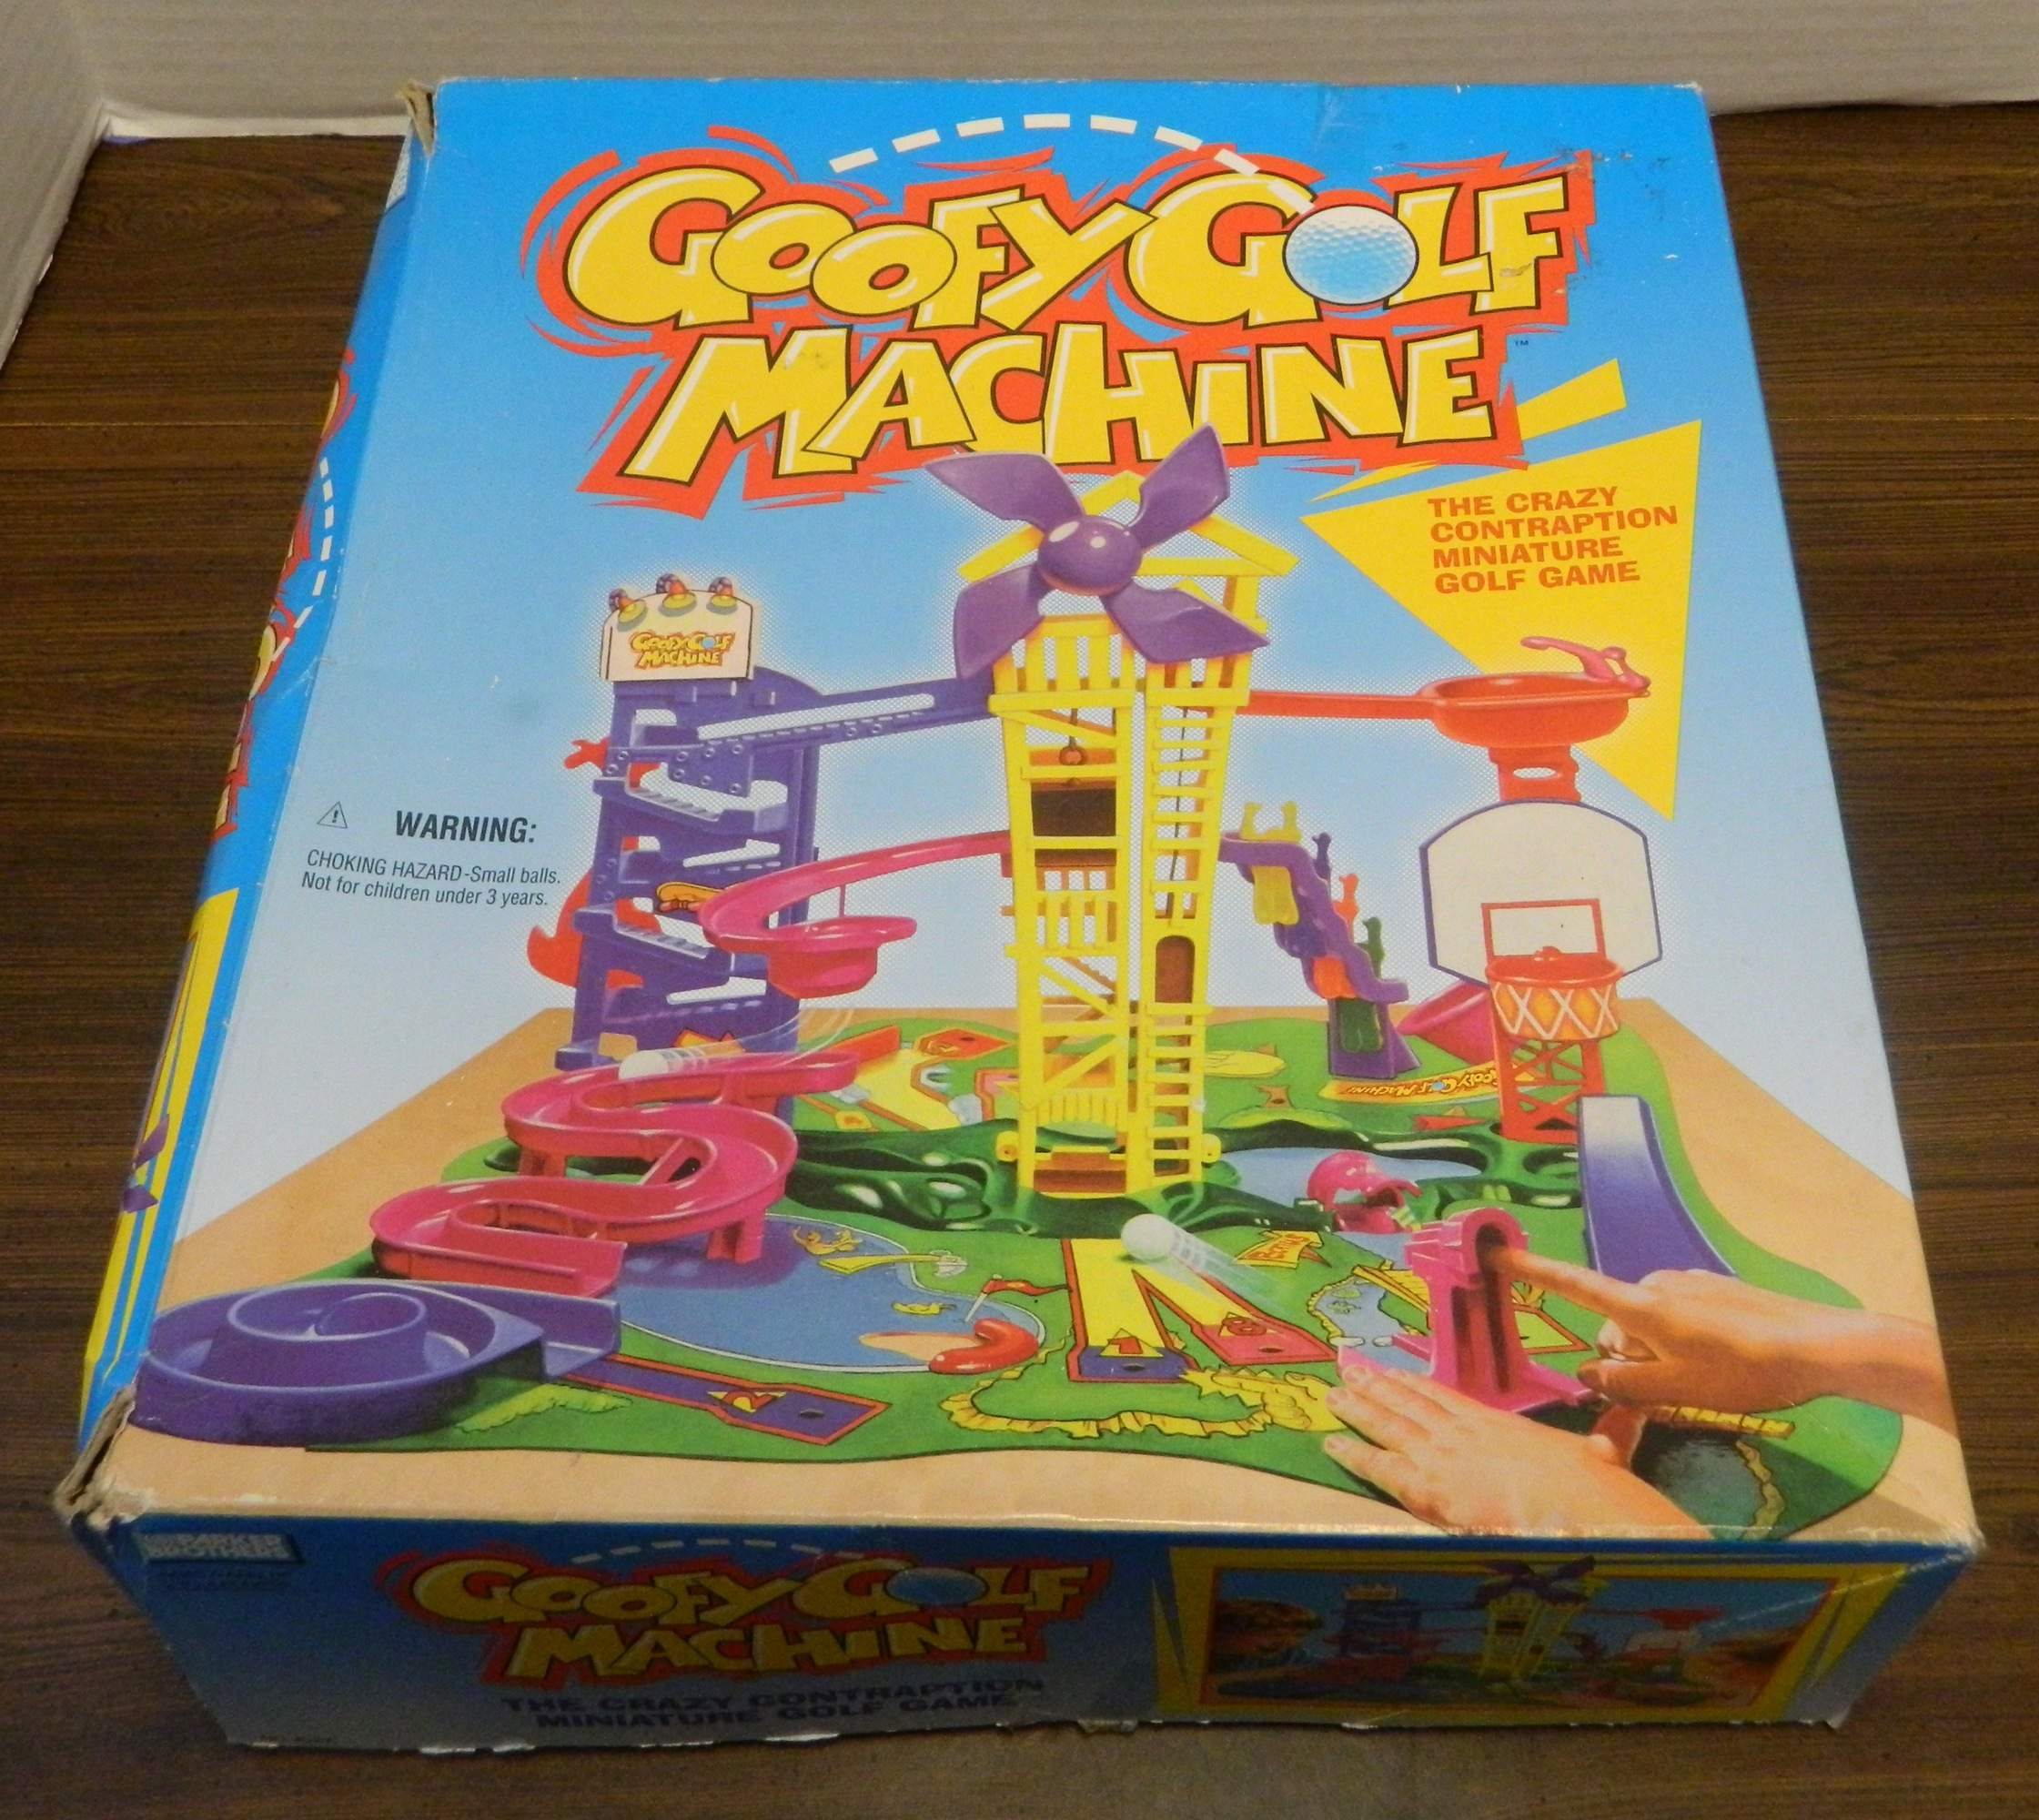 Goofy Golf Machine Board Game Review and Rules | Geeky Hobbies